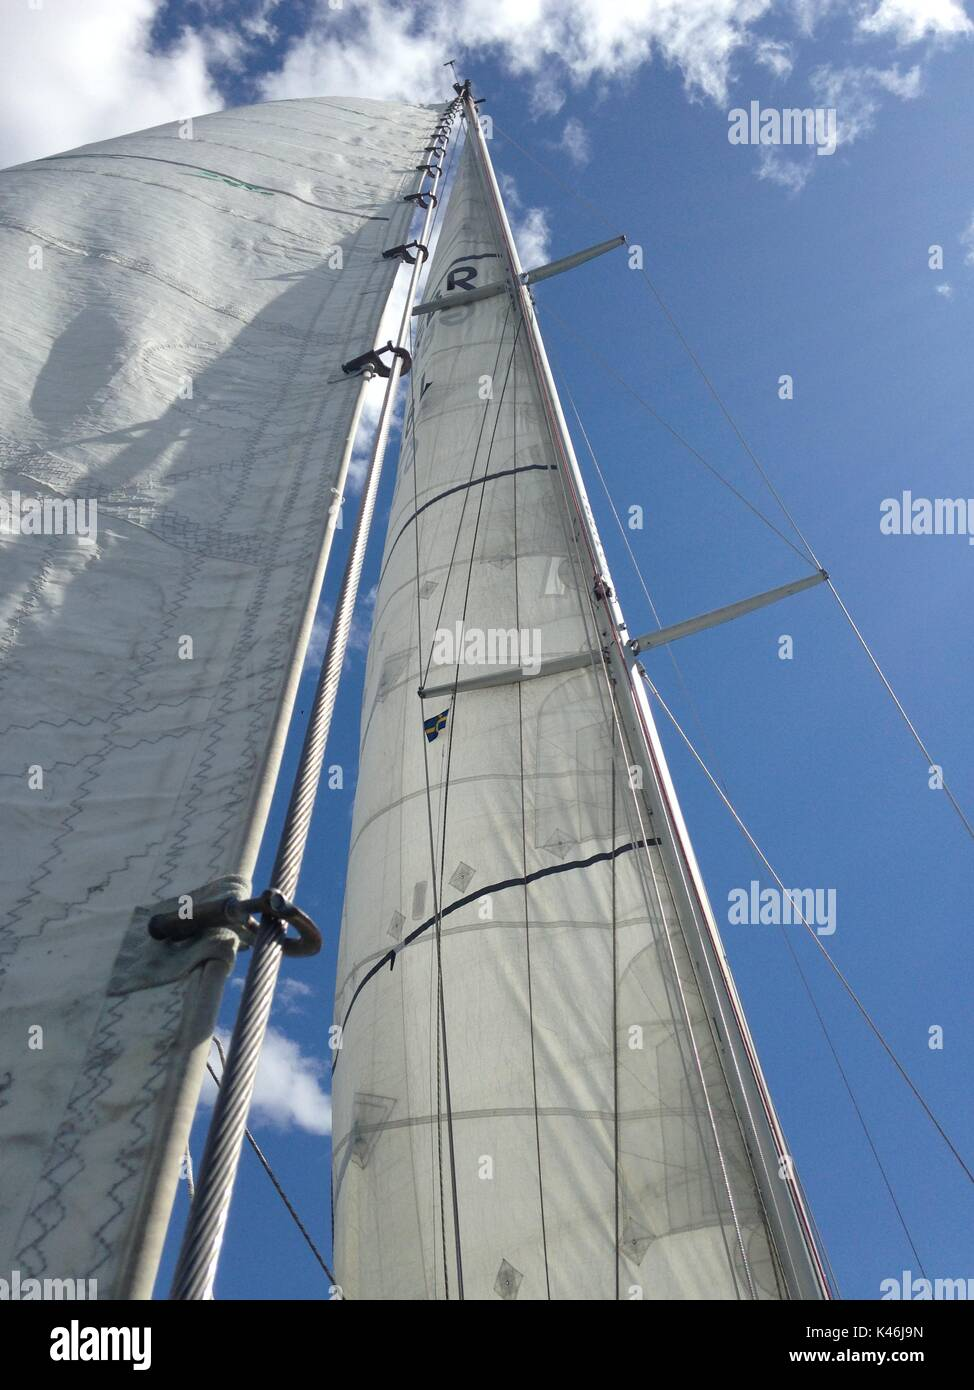 Sailing on a sunny day, white sails against a blue sky - Stock Image